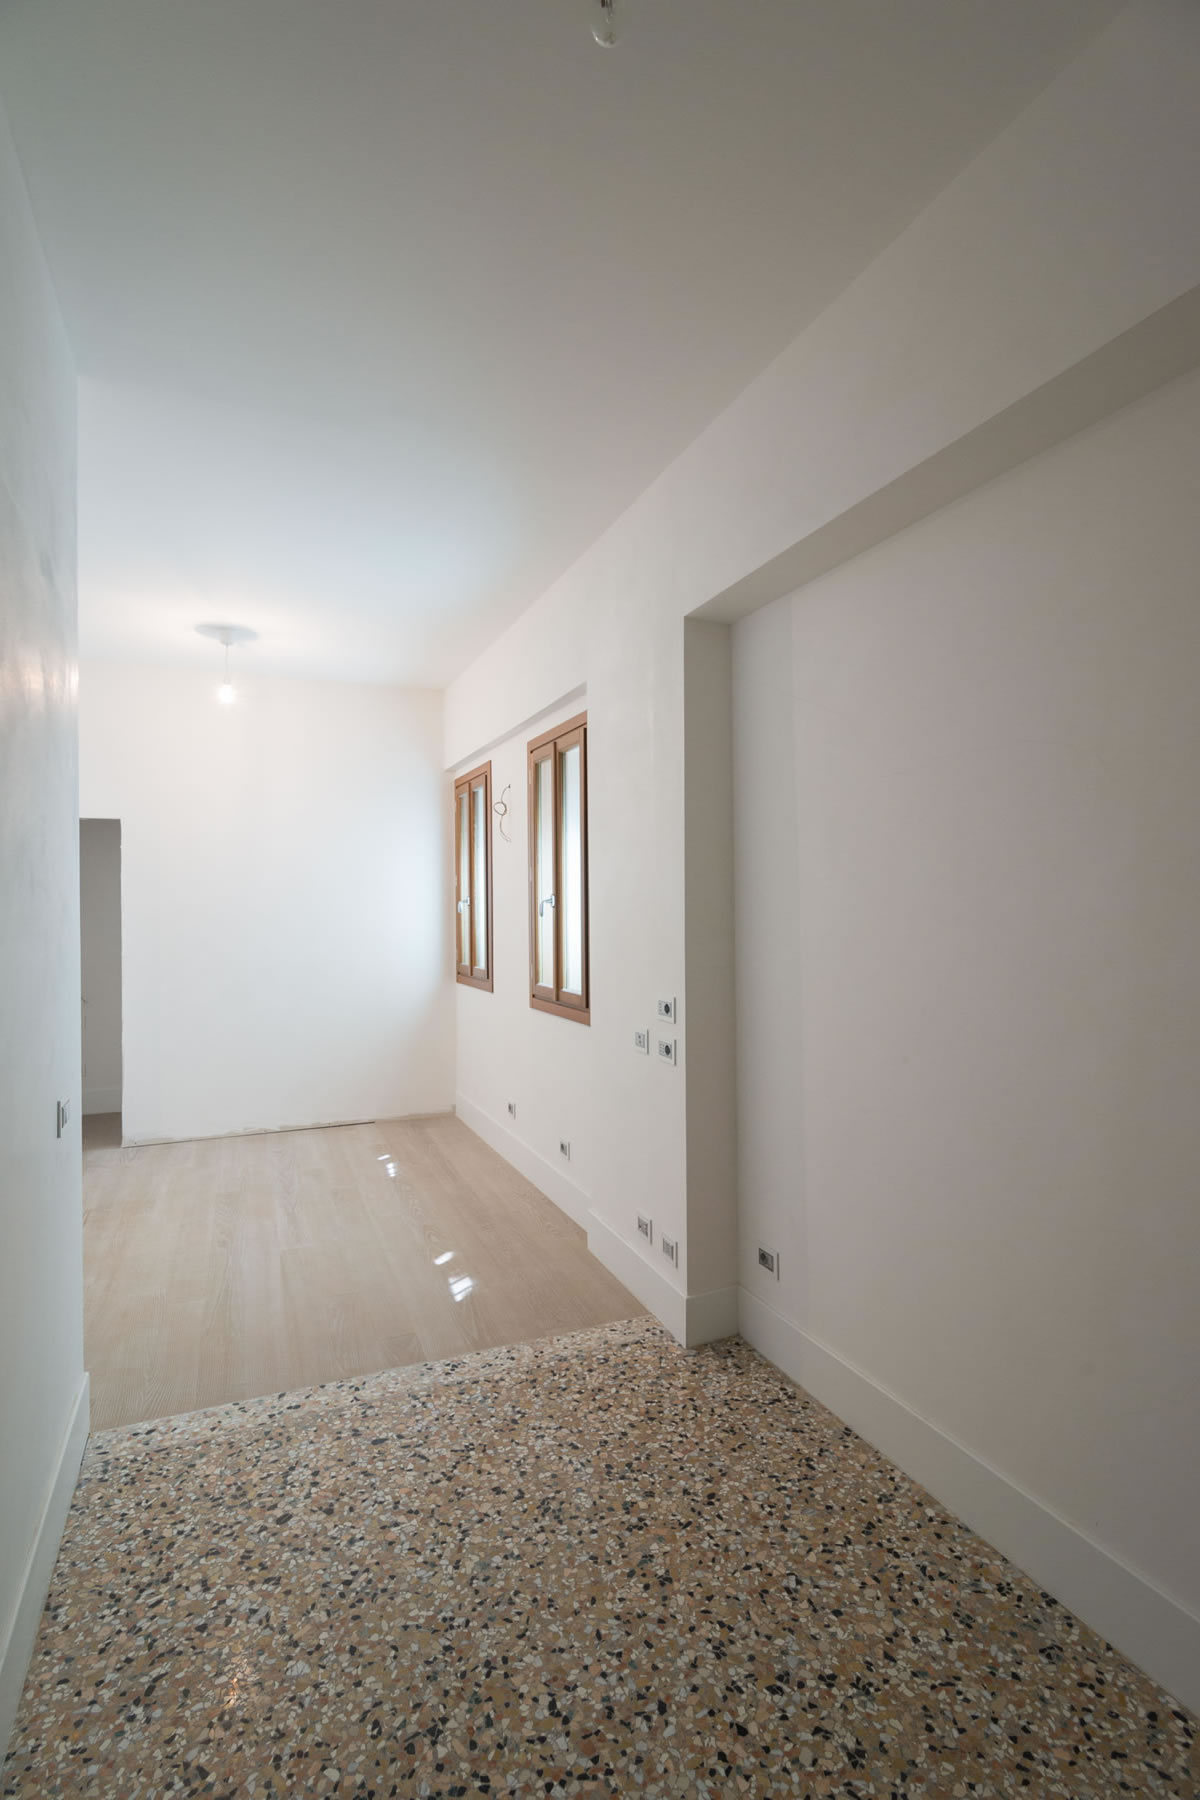 Additional photo for property listing at Tiziano Palazzo Molin del Cuoridoro San Marco Venice, Venice Italien